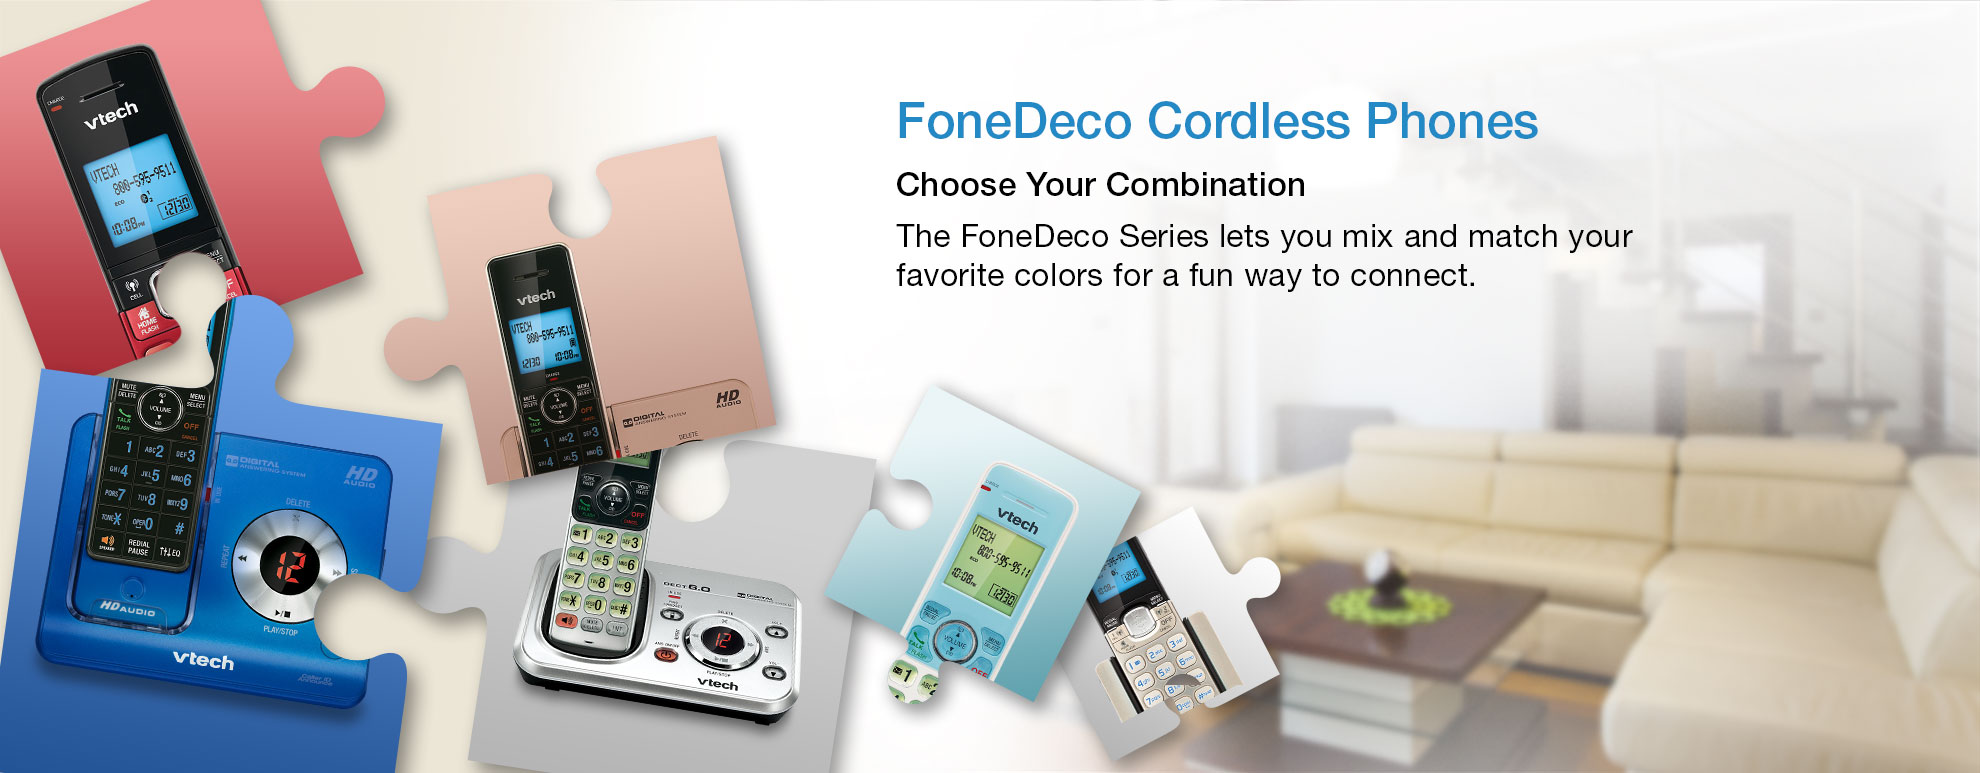 FoneDeco Cordless Phones - Choose Your Combination - The FoneDeco Series lets you mix and match your favorite colors for a fun way to connect.